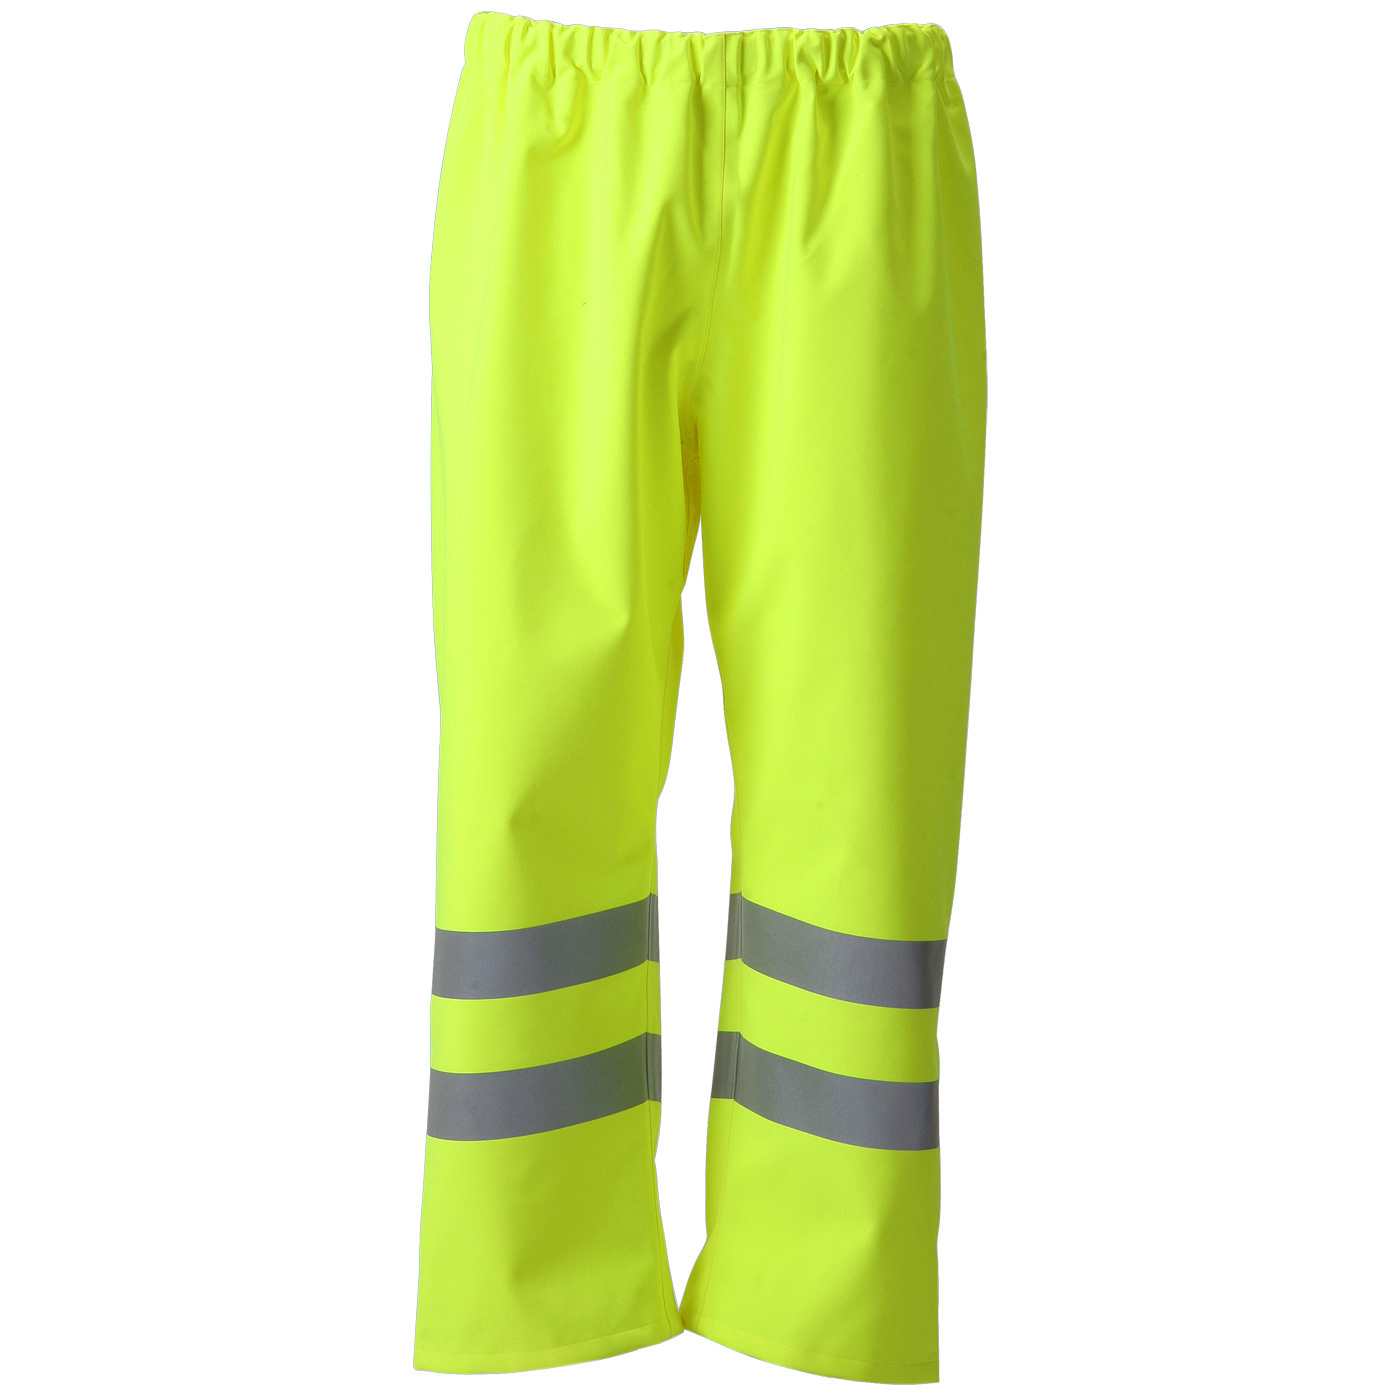 BSeen Gore-Tex Over Trousers Foul Weather 2XL Saturn Yellow Ref GTHV160SYXXL Up to 3 Day Leadtime